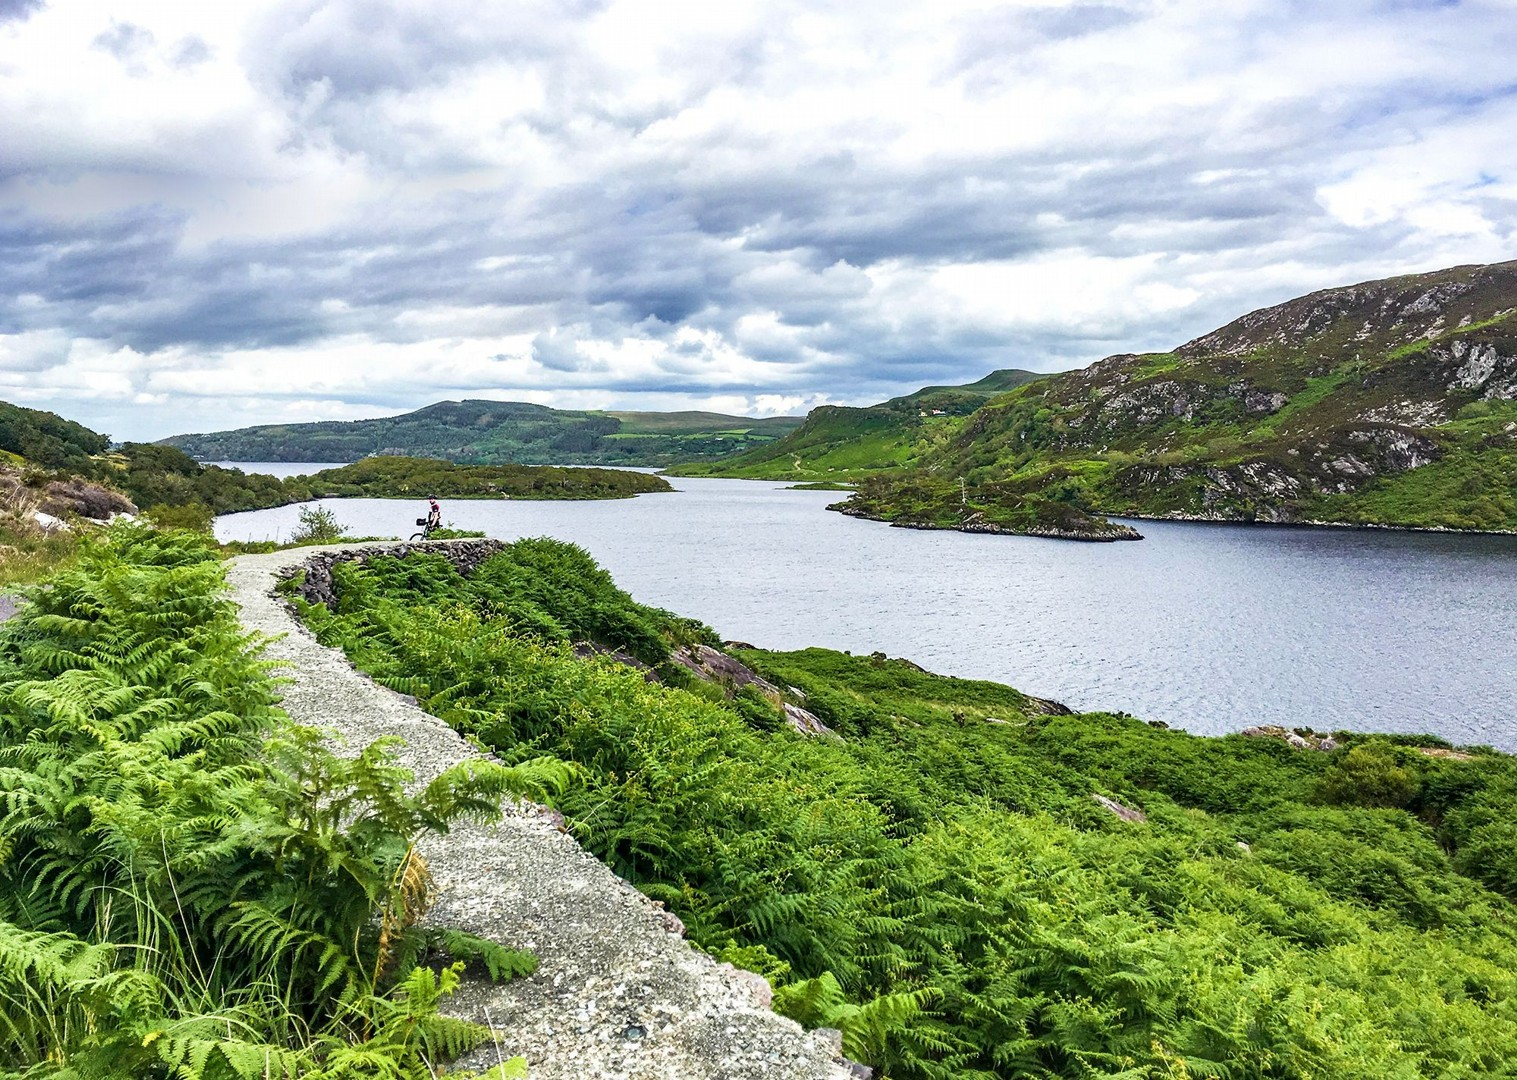 self-guided-holiday-leisure-cycling-saddle-skedaddle-ireland.jpg - Ireland - Highlights of Kerry - Self-Guided Leisure Cycling Holiday - Leisure Cycling